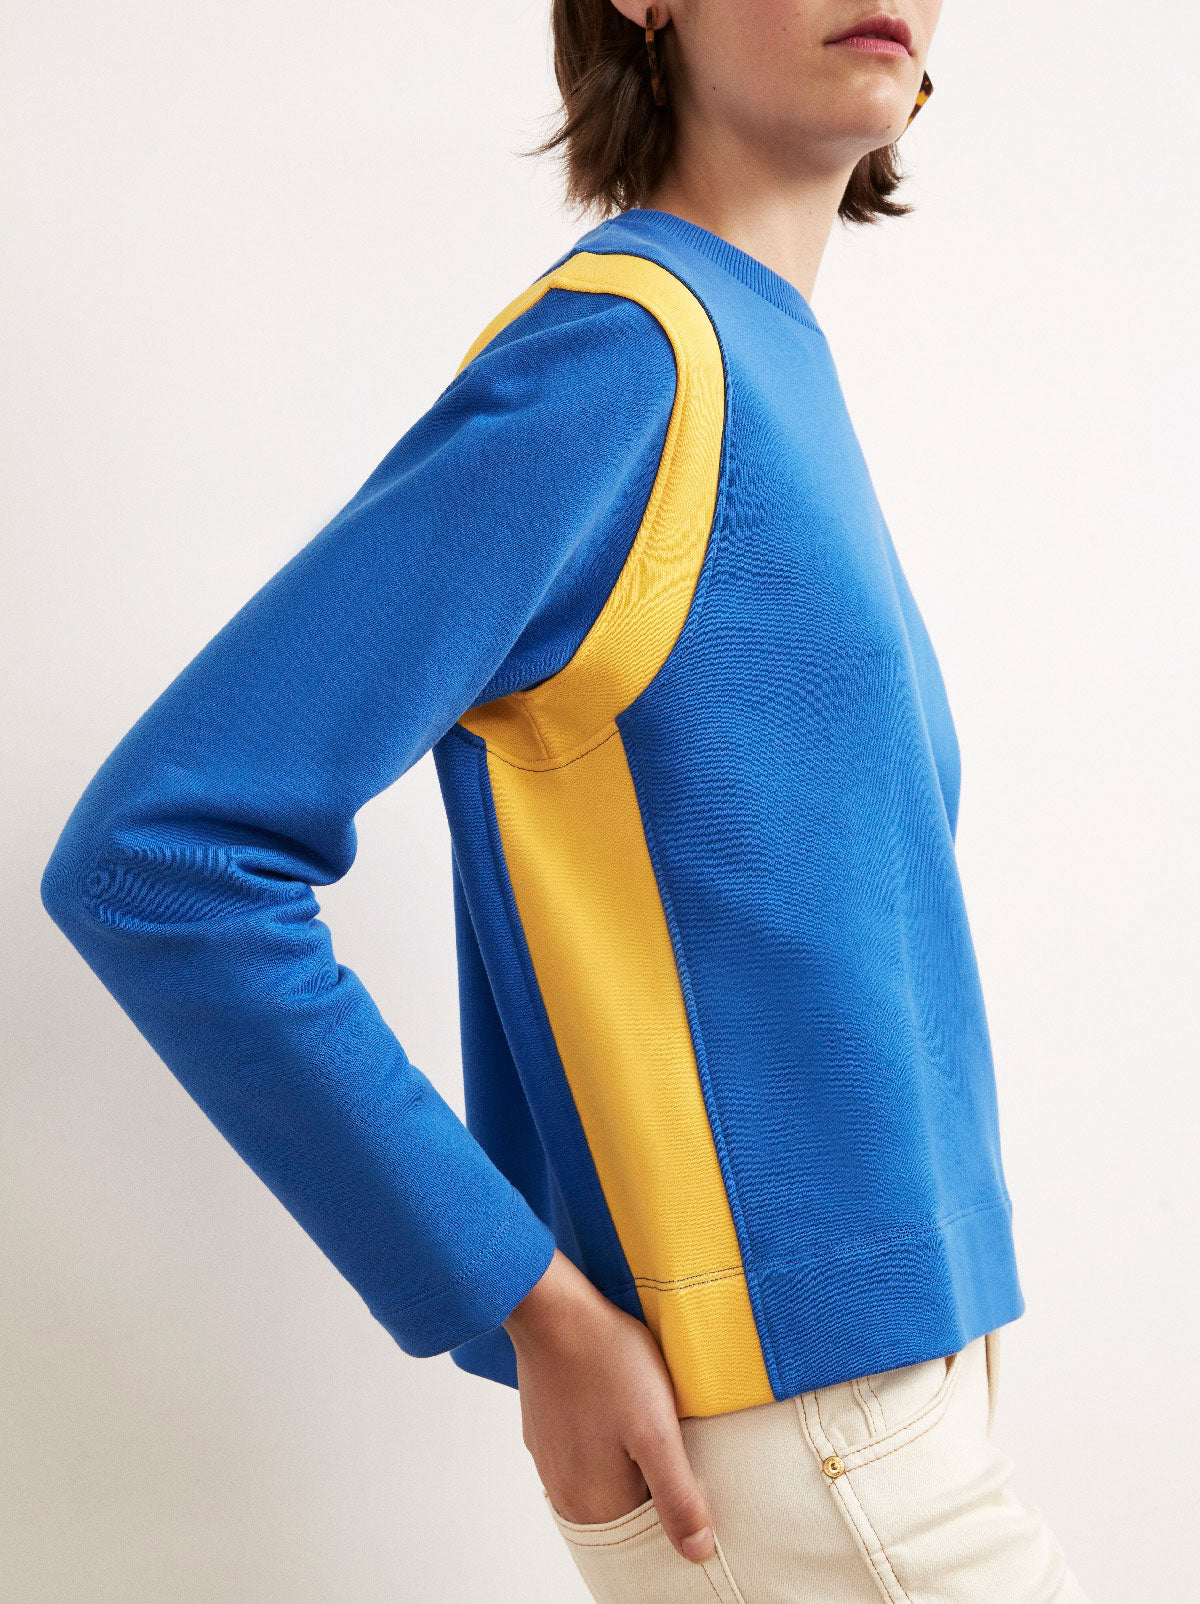 Therese Cotton Contrast Stripe Sweatshirt by KITRI Studio